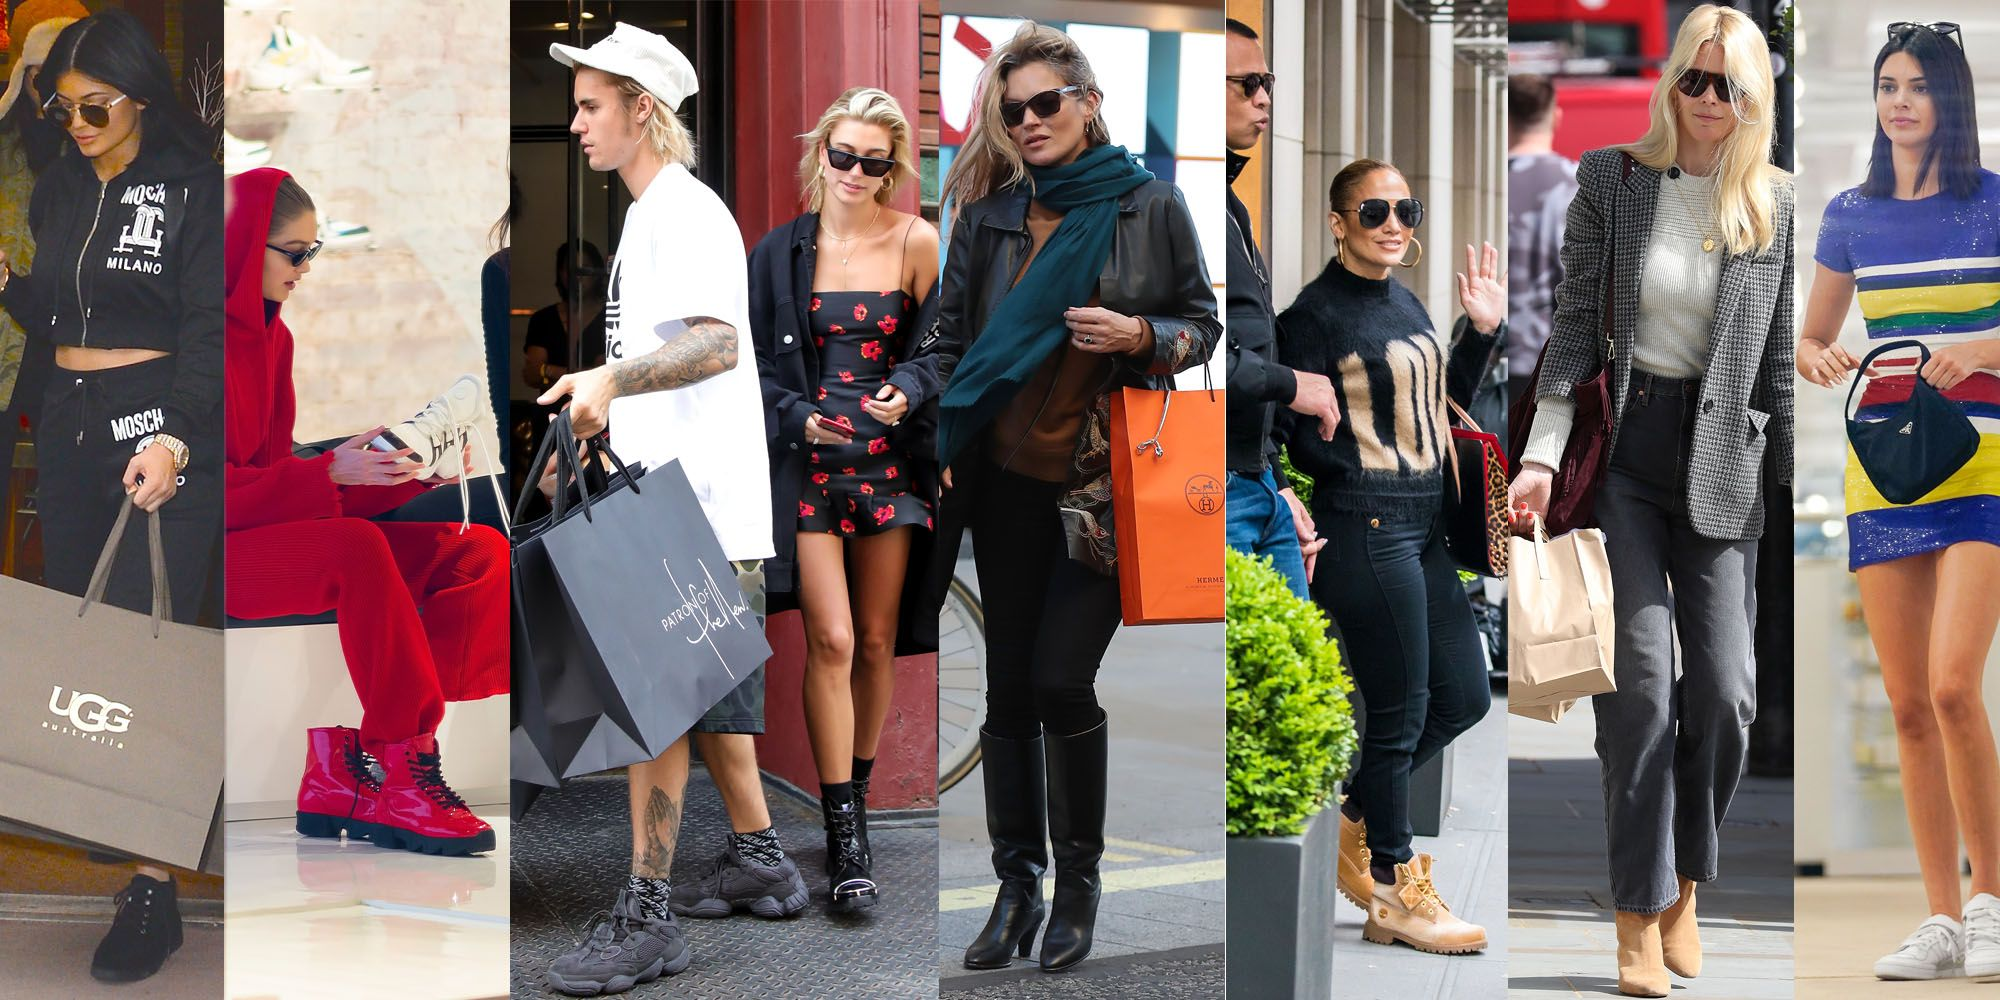 Celebrities shopping